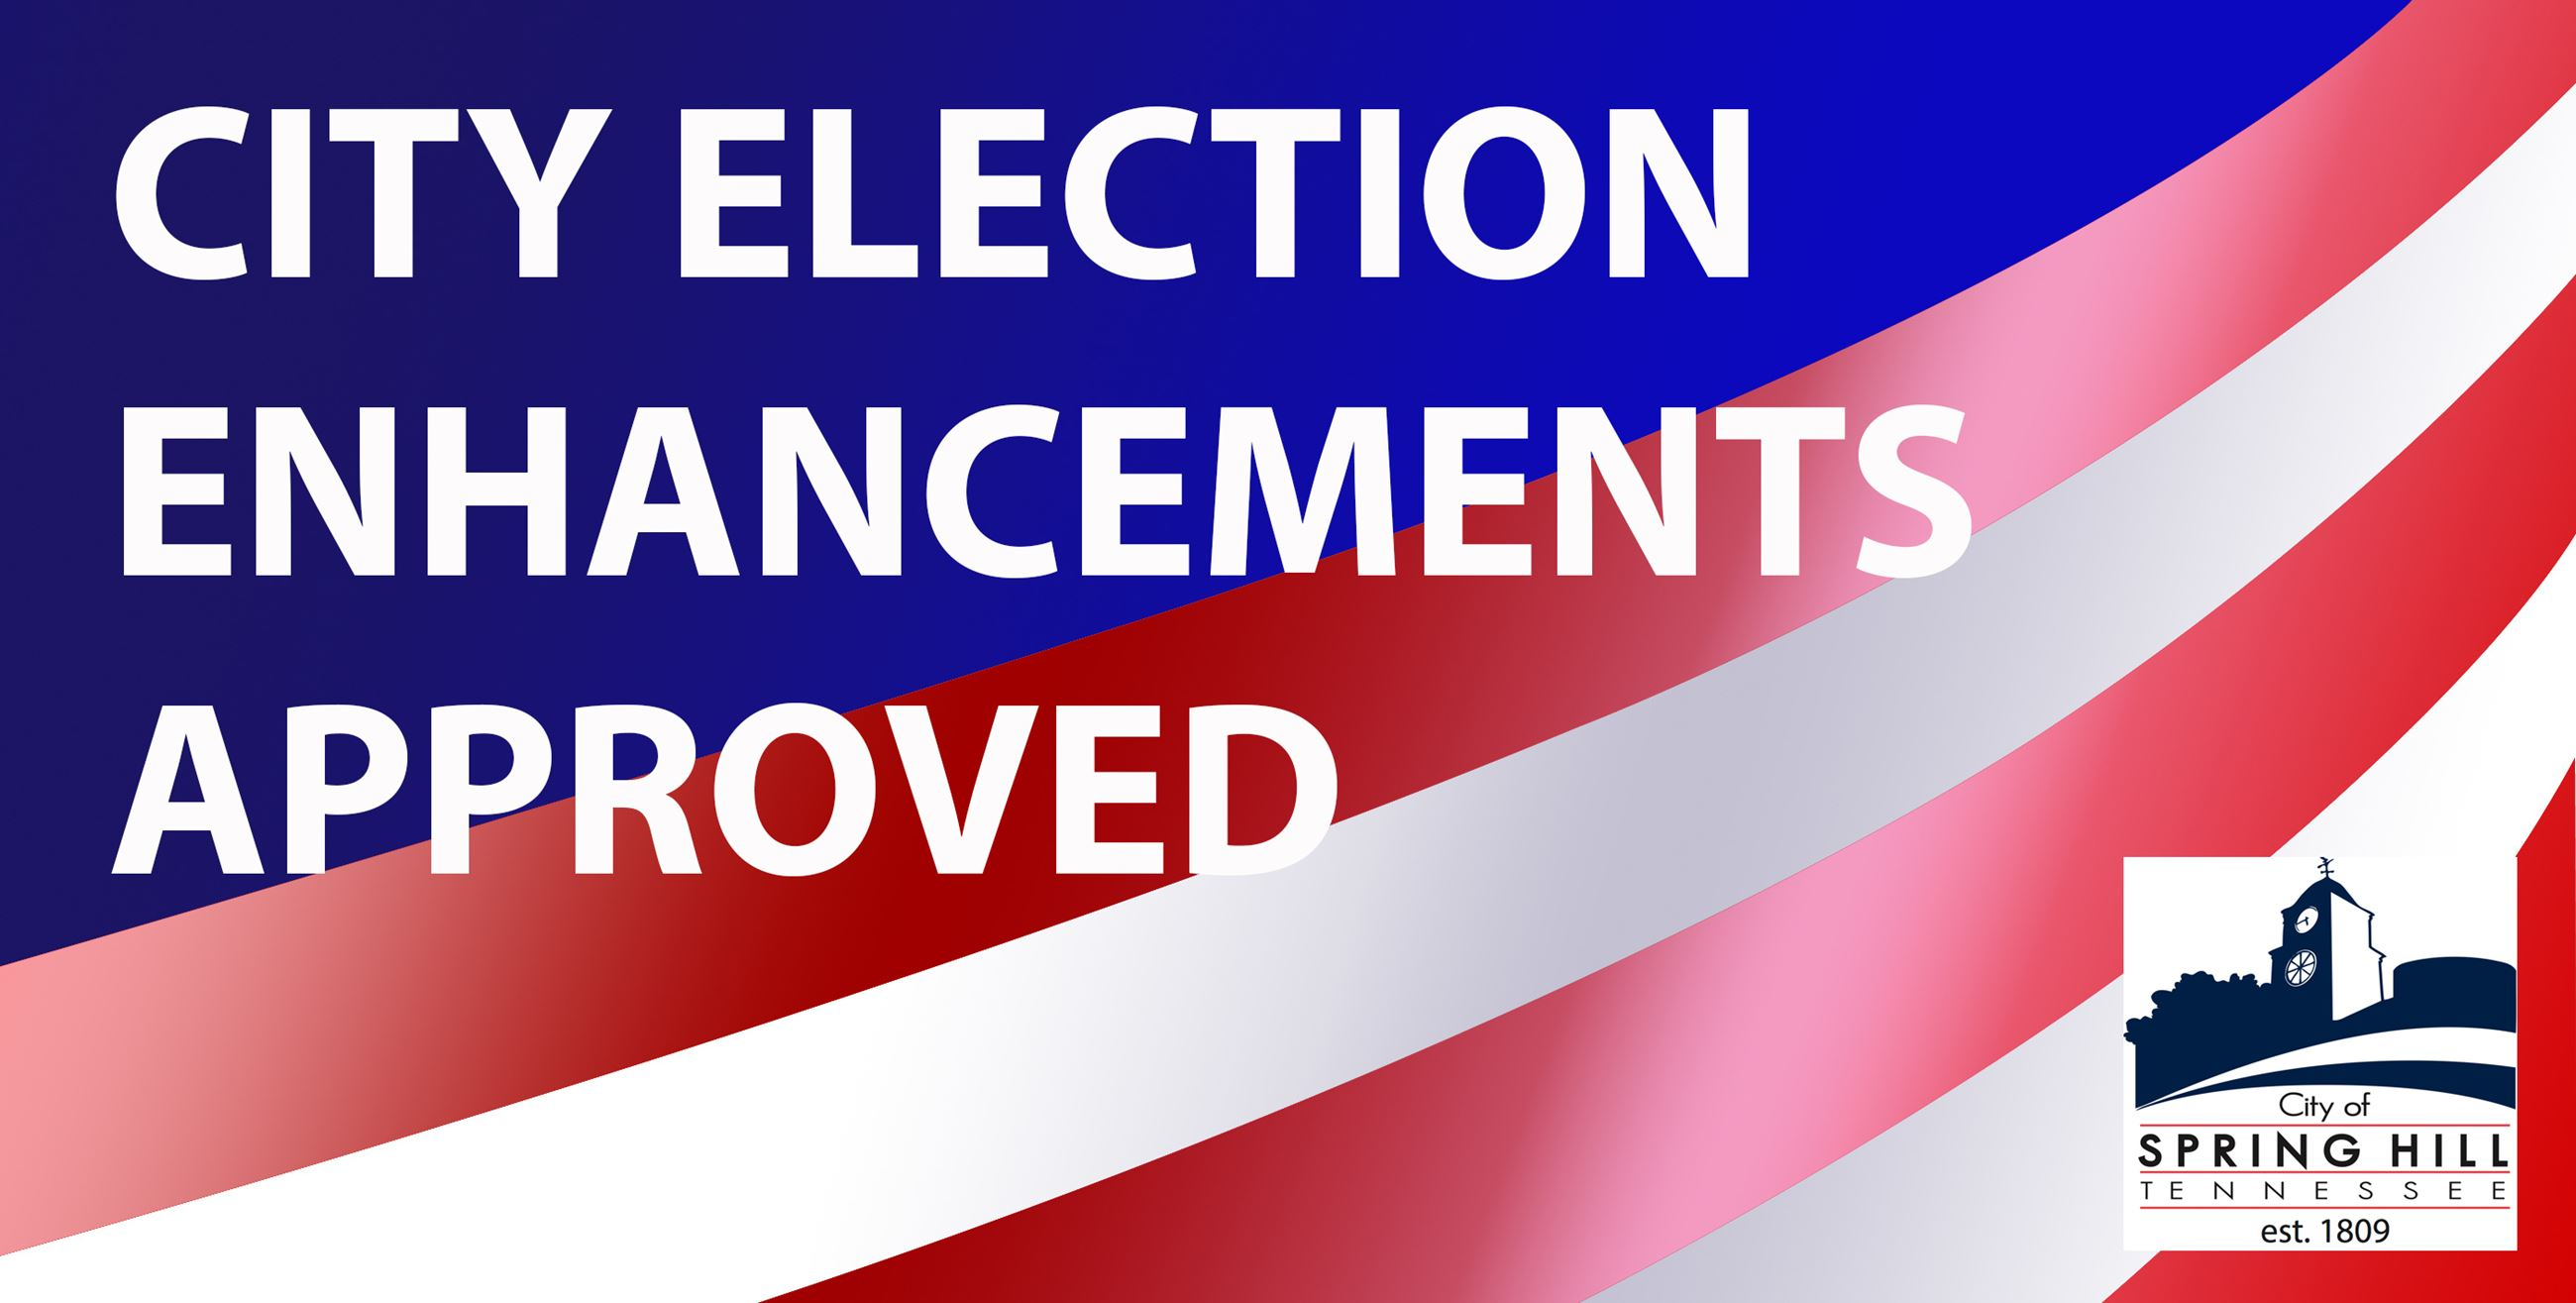 Election Enhancements Approved